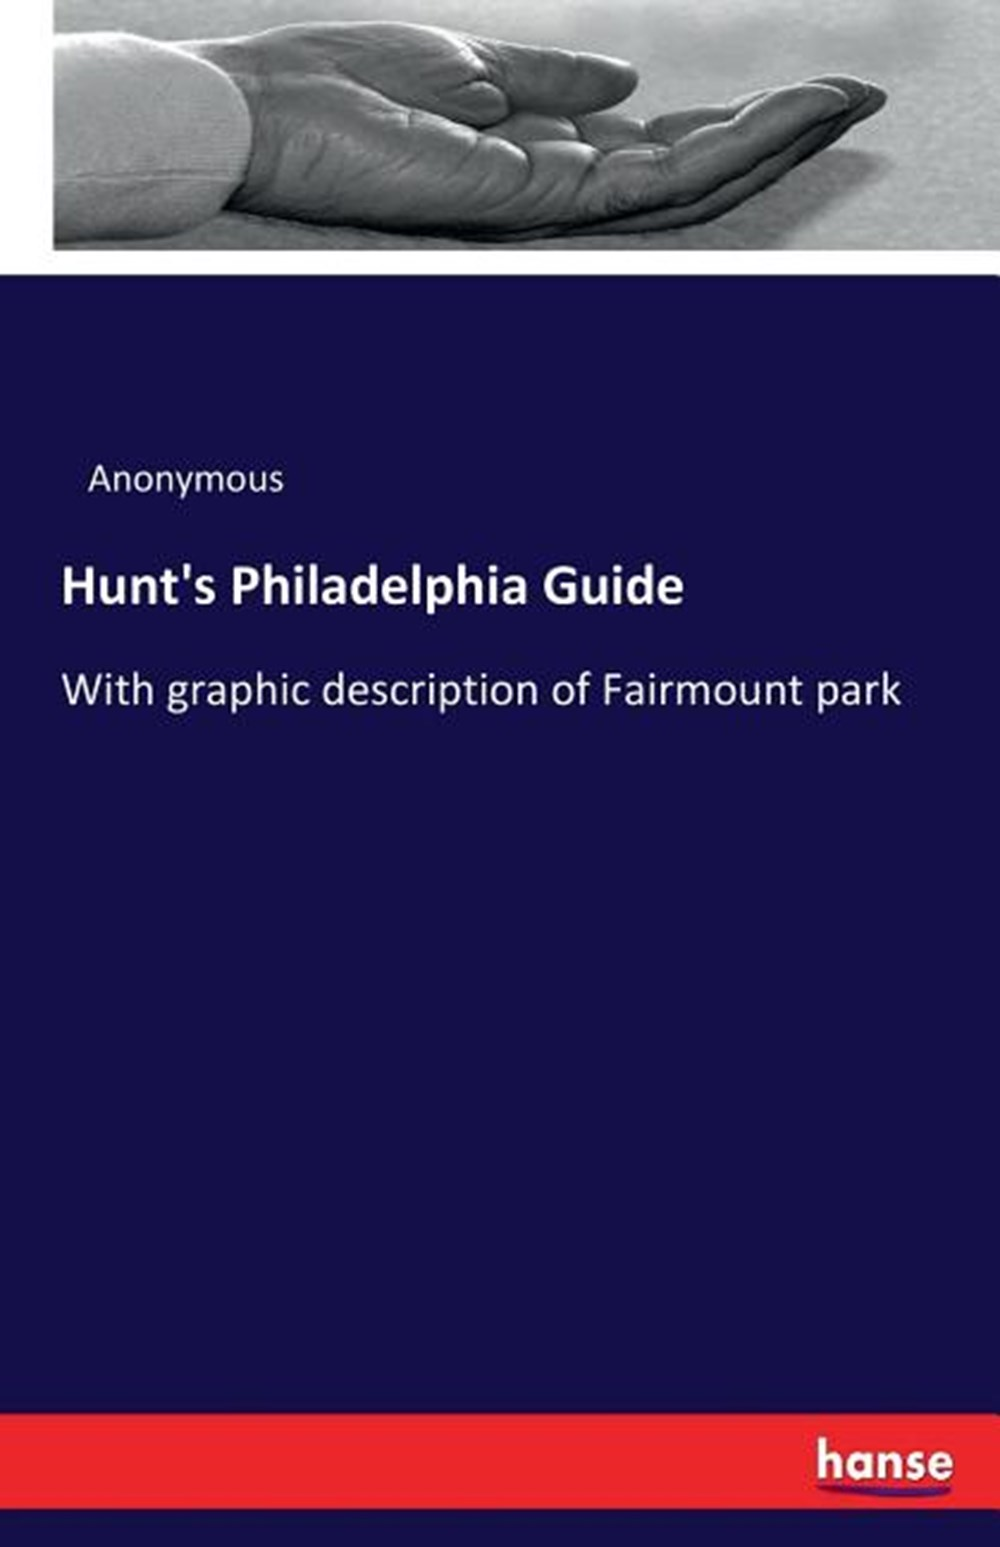 Hunt's Philadelphia Guide With graphic description of Fairmount park